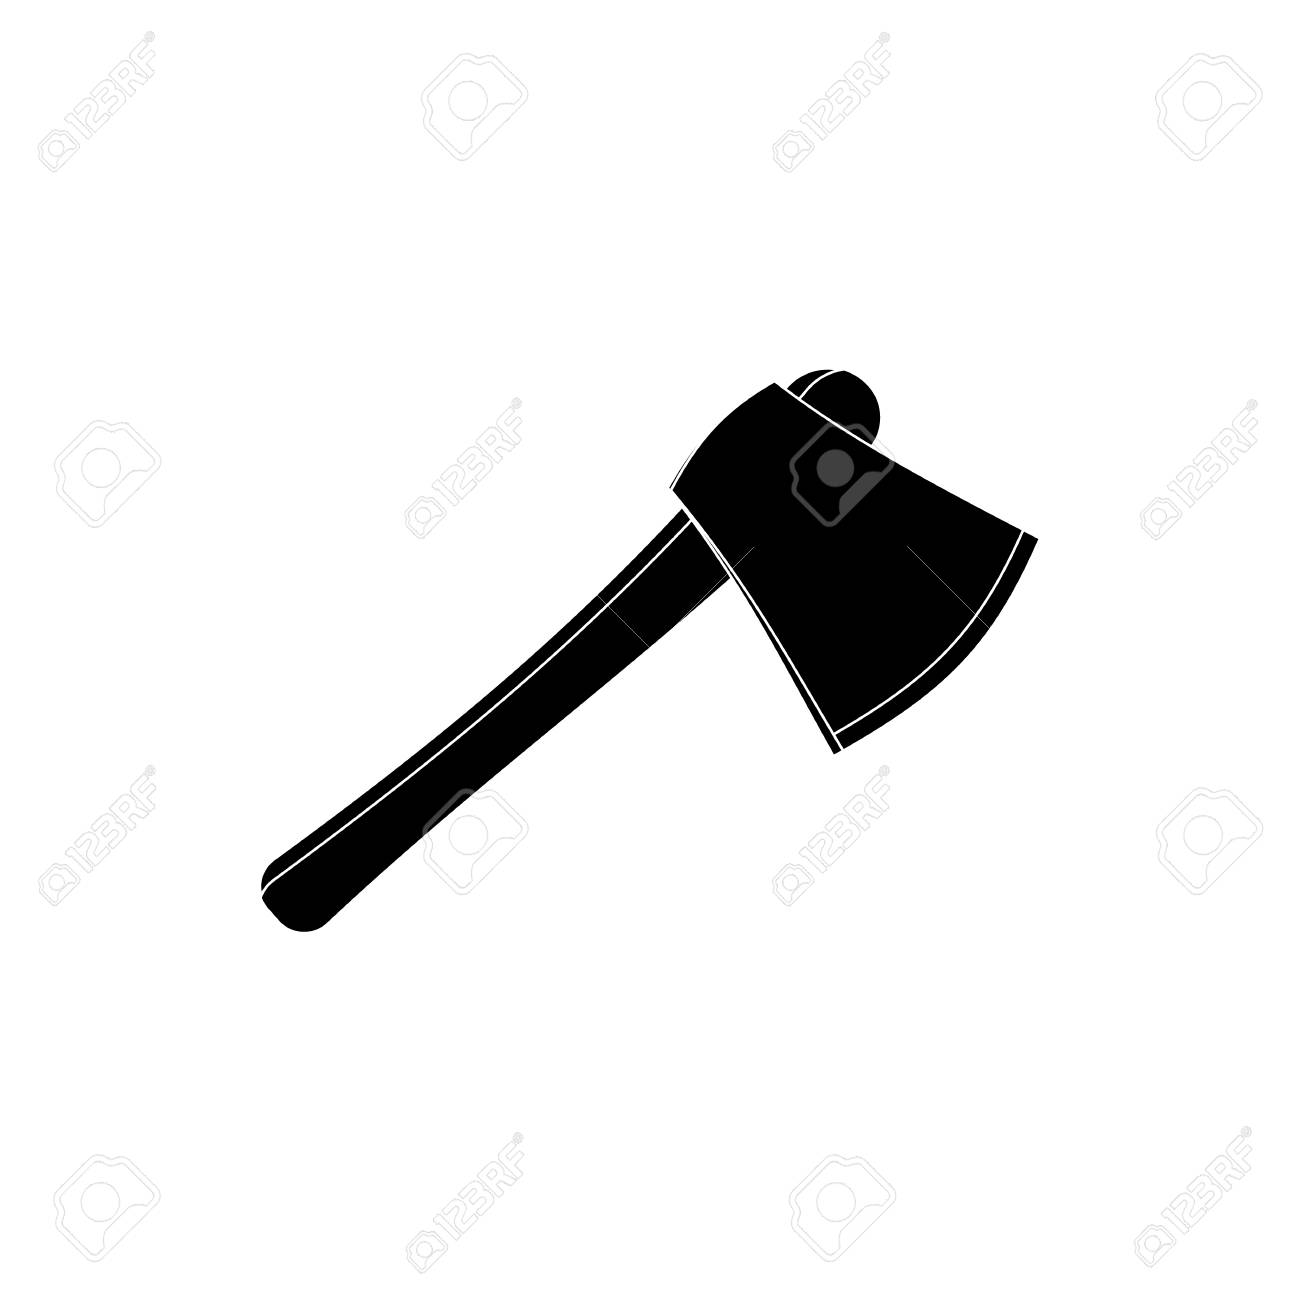 Axe icon in simple style isolated on white background tool symbol axe icon in simple style isolated on white background tool symbol vector illustration stock vector buycottarizona Choice Image